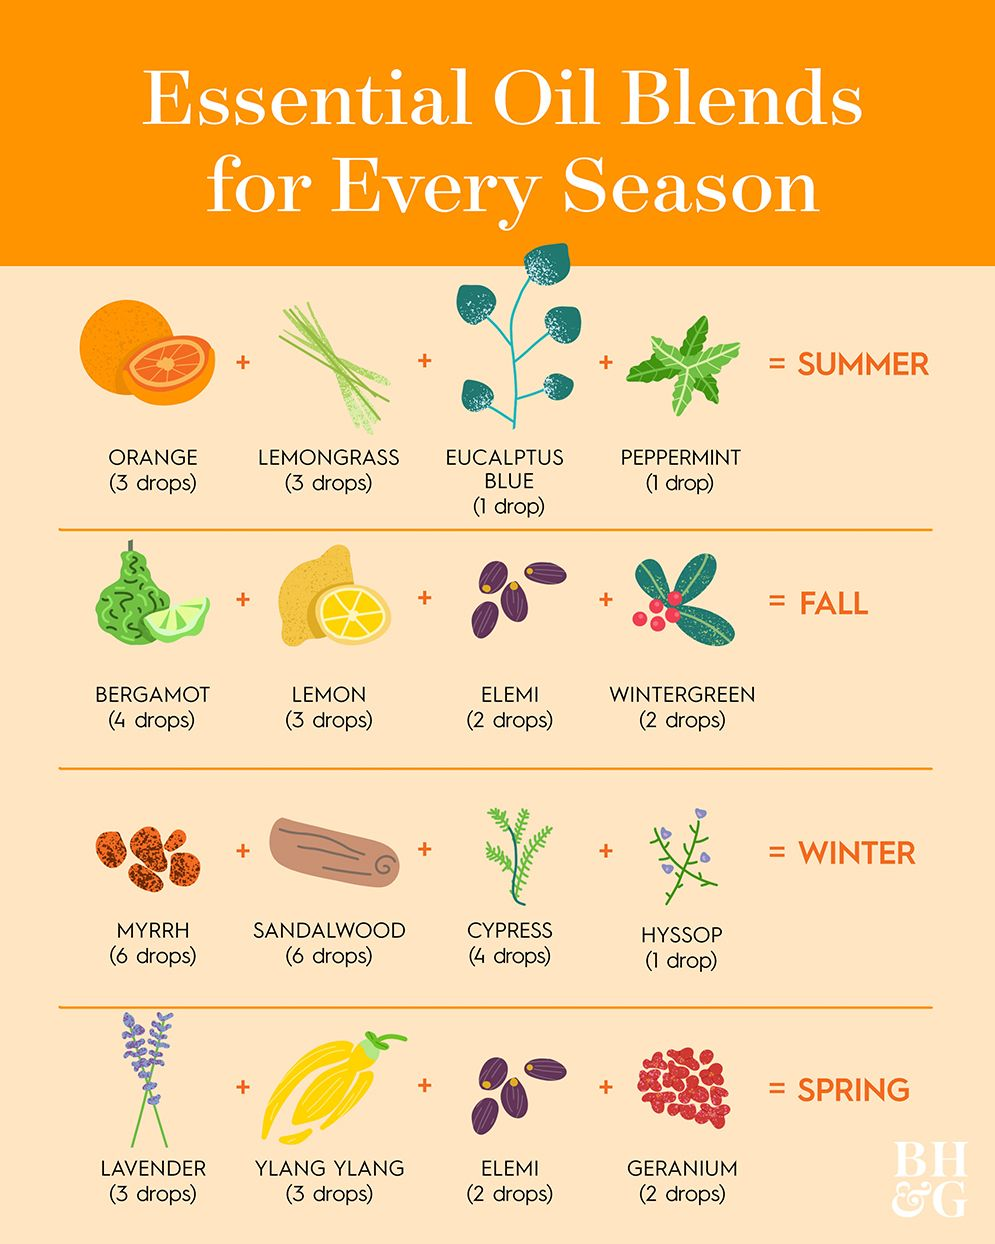 How To Make The Best Diy Essential Oil Blend For Every Season